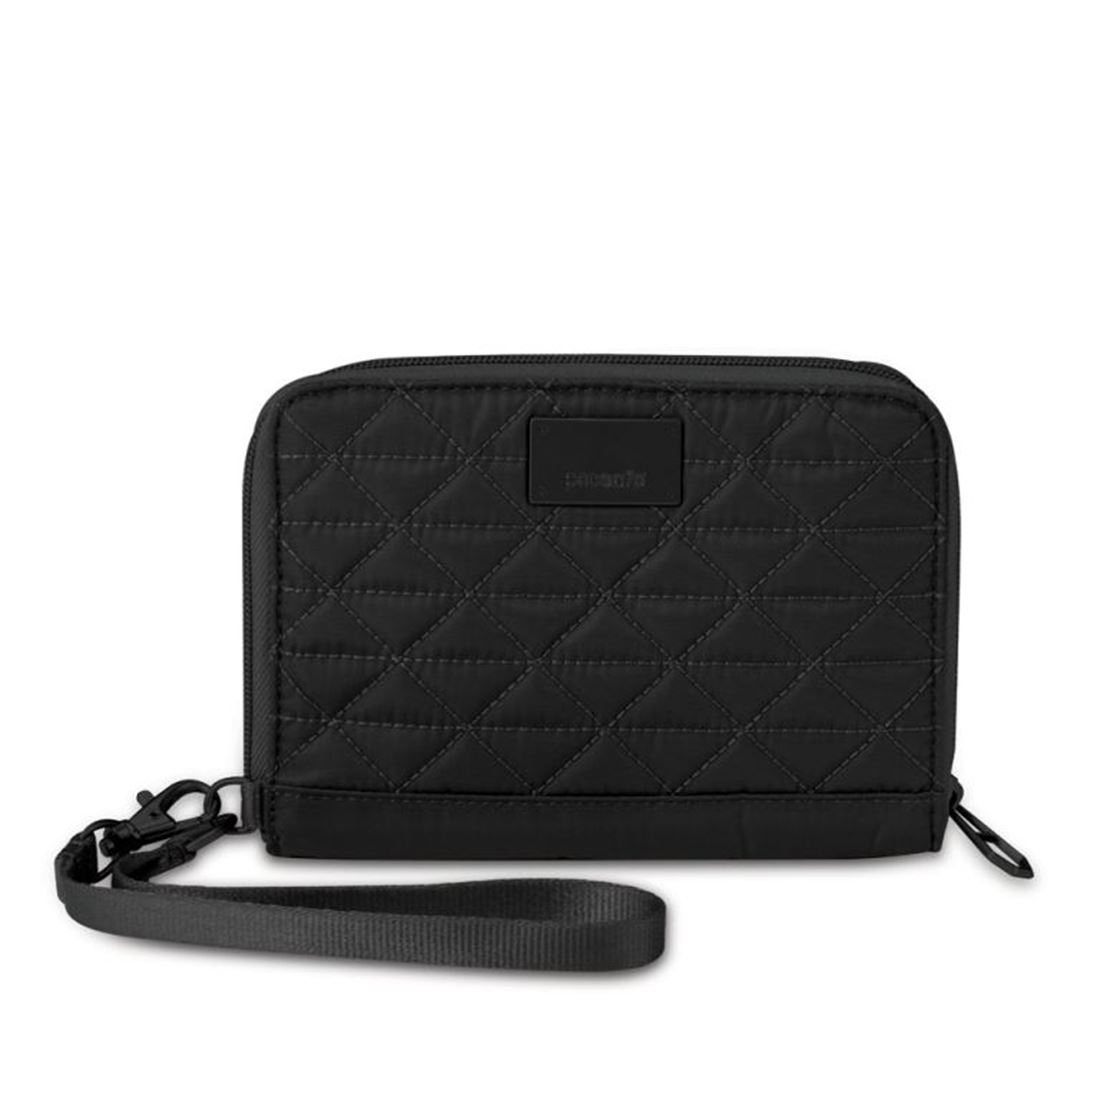 Picture of Pacsafe RFIDsafe W150 Travel Organiser